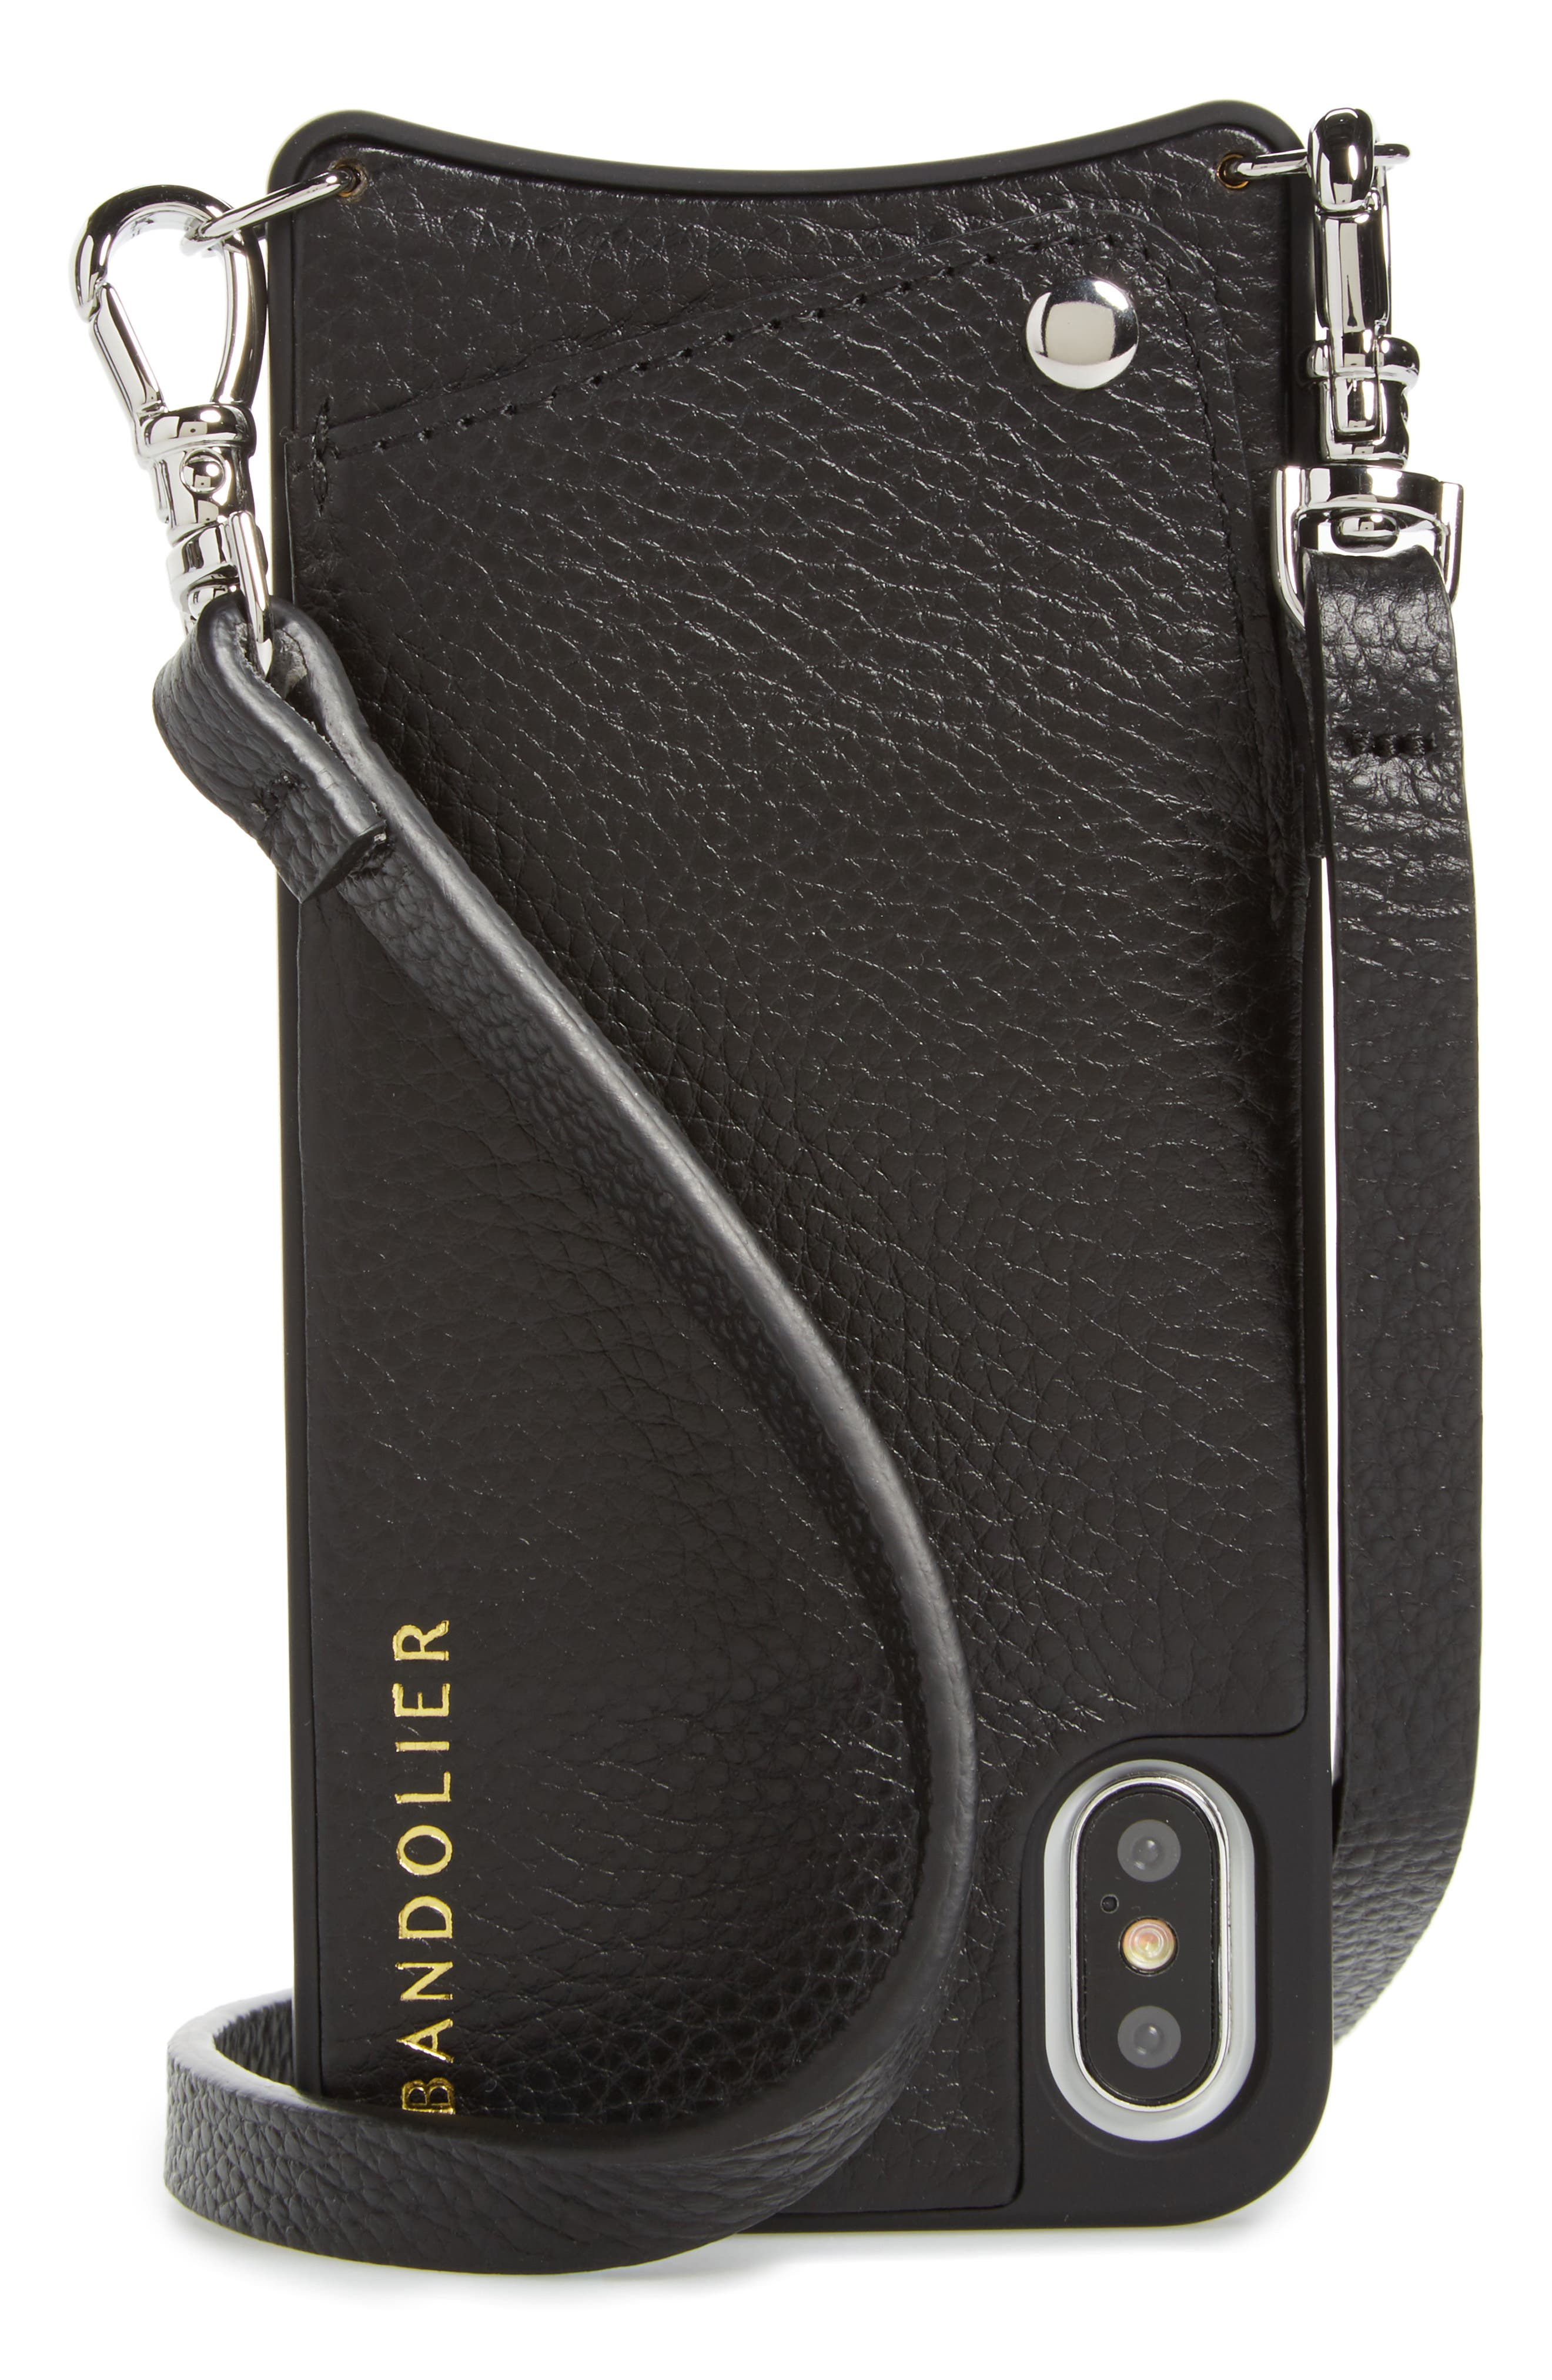 Crossbody Phone Bags Accessories   Nordstrom 3d5ef838a6